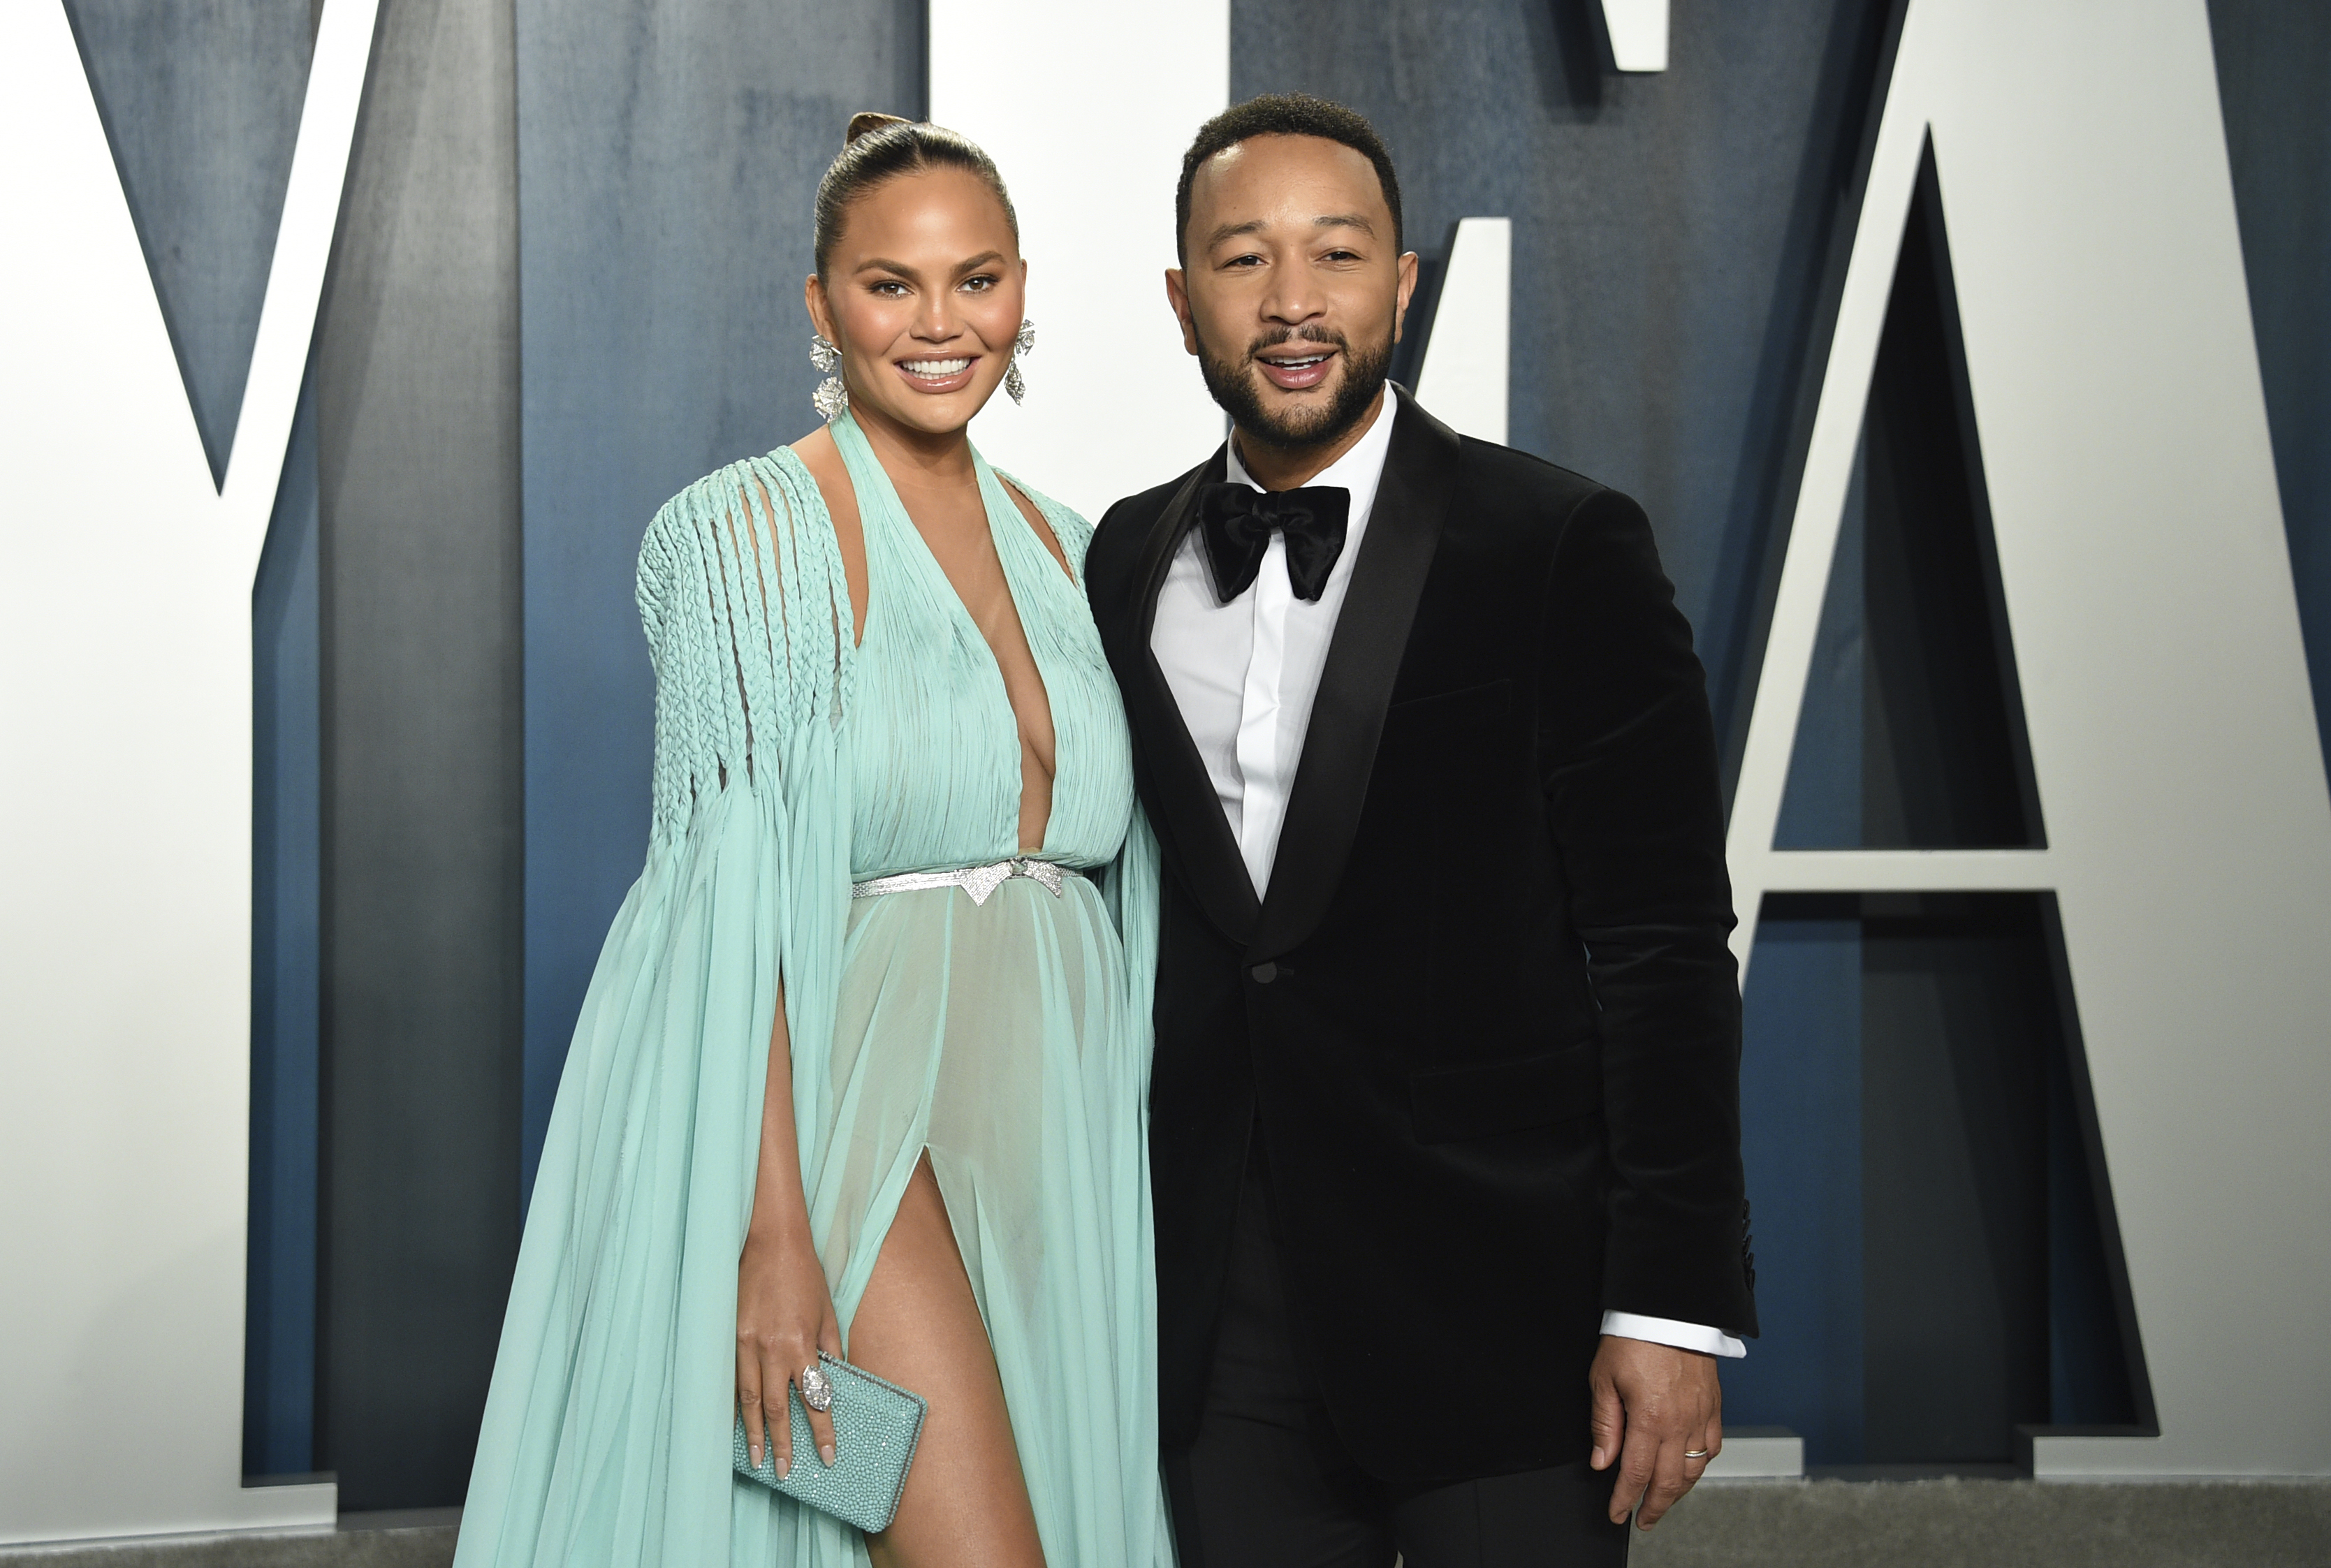 In this Feb. 9, 2020 file photo, Chrissy Teigen, left, and John Legend arrive at the Vanity Fair Oscar Party in Beverly Hills, Calif.